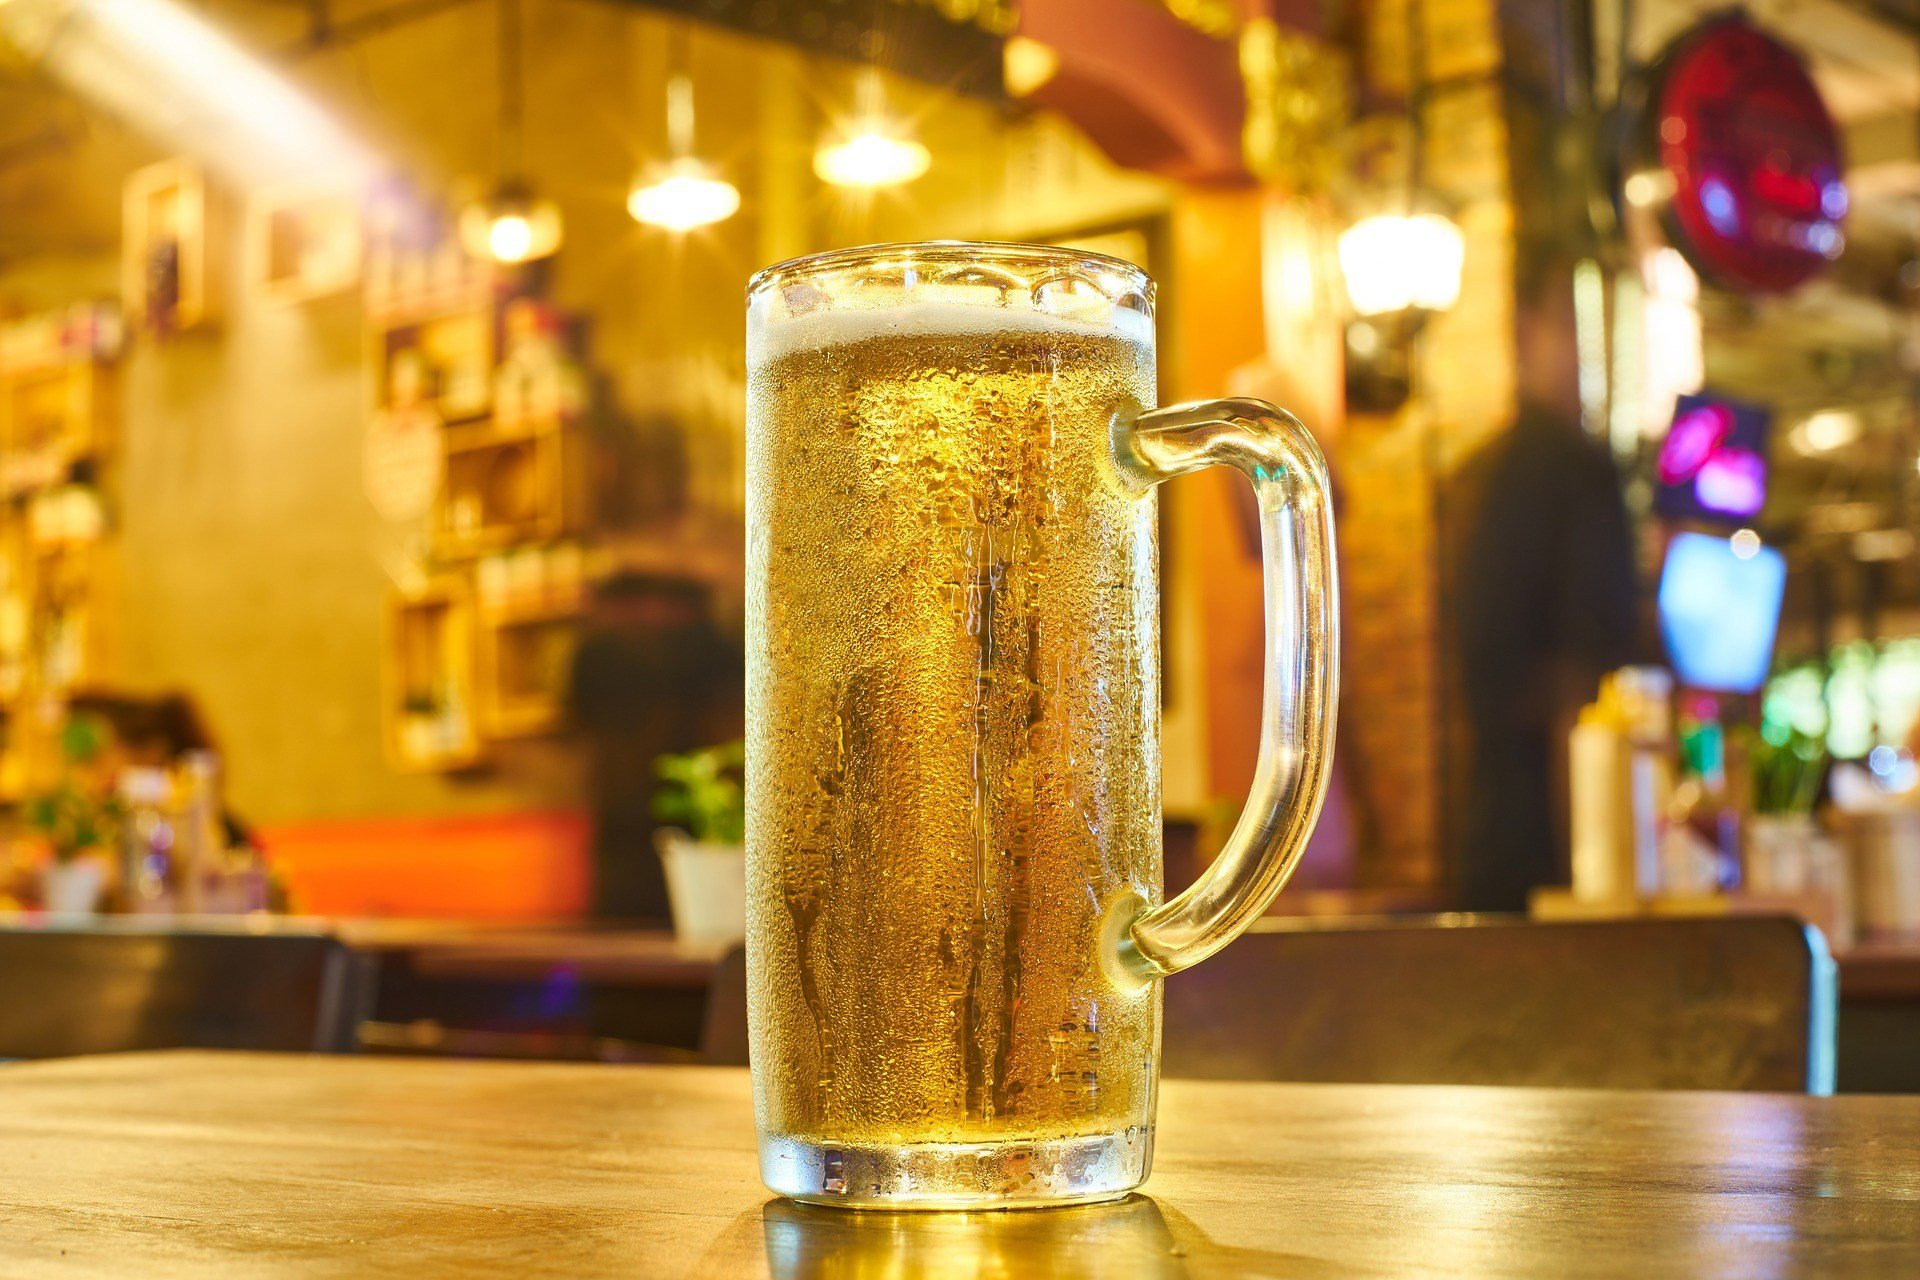 Restaurants and bars in Moscow told Reuters the influx of fans have nearly drained their supply and it is taking longer than usual to restock. (Source: Pixabay)